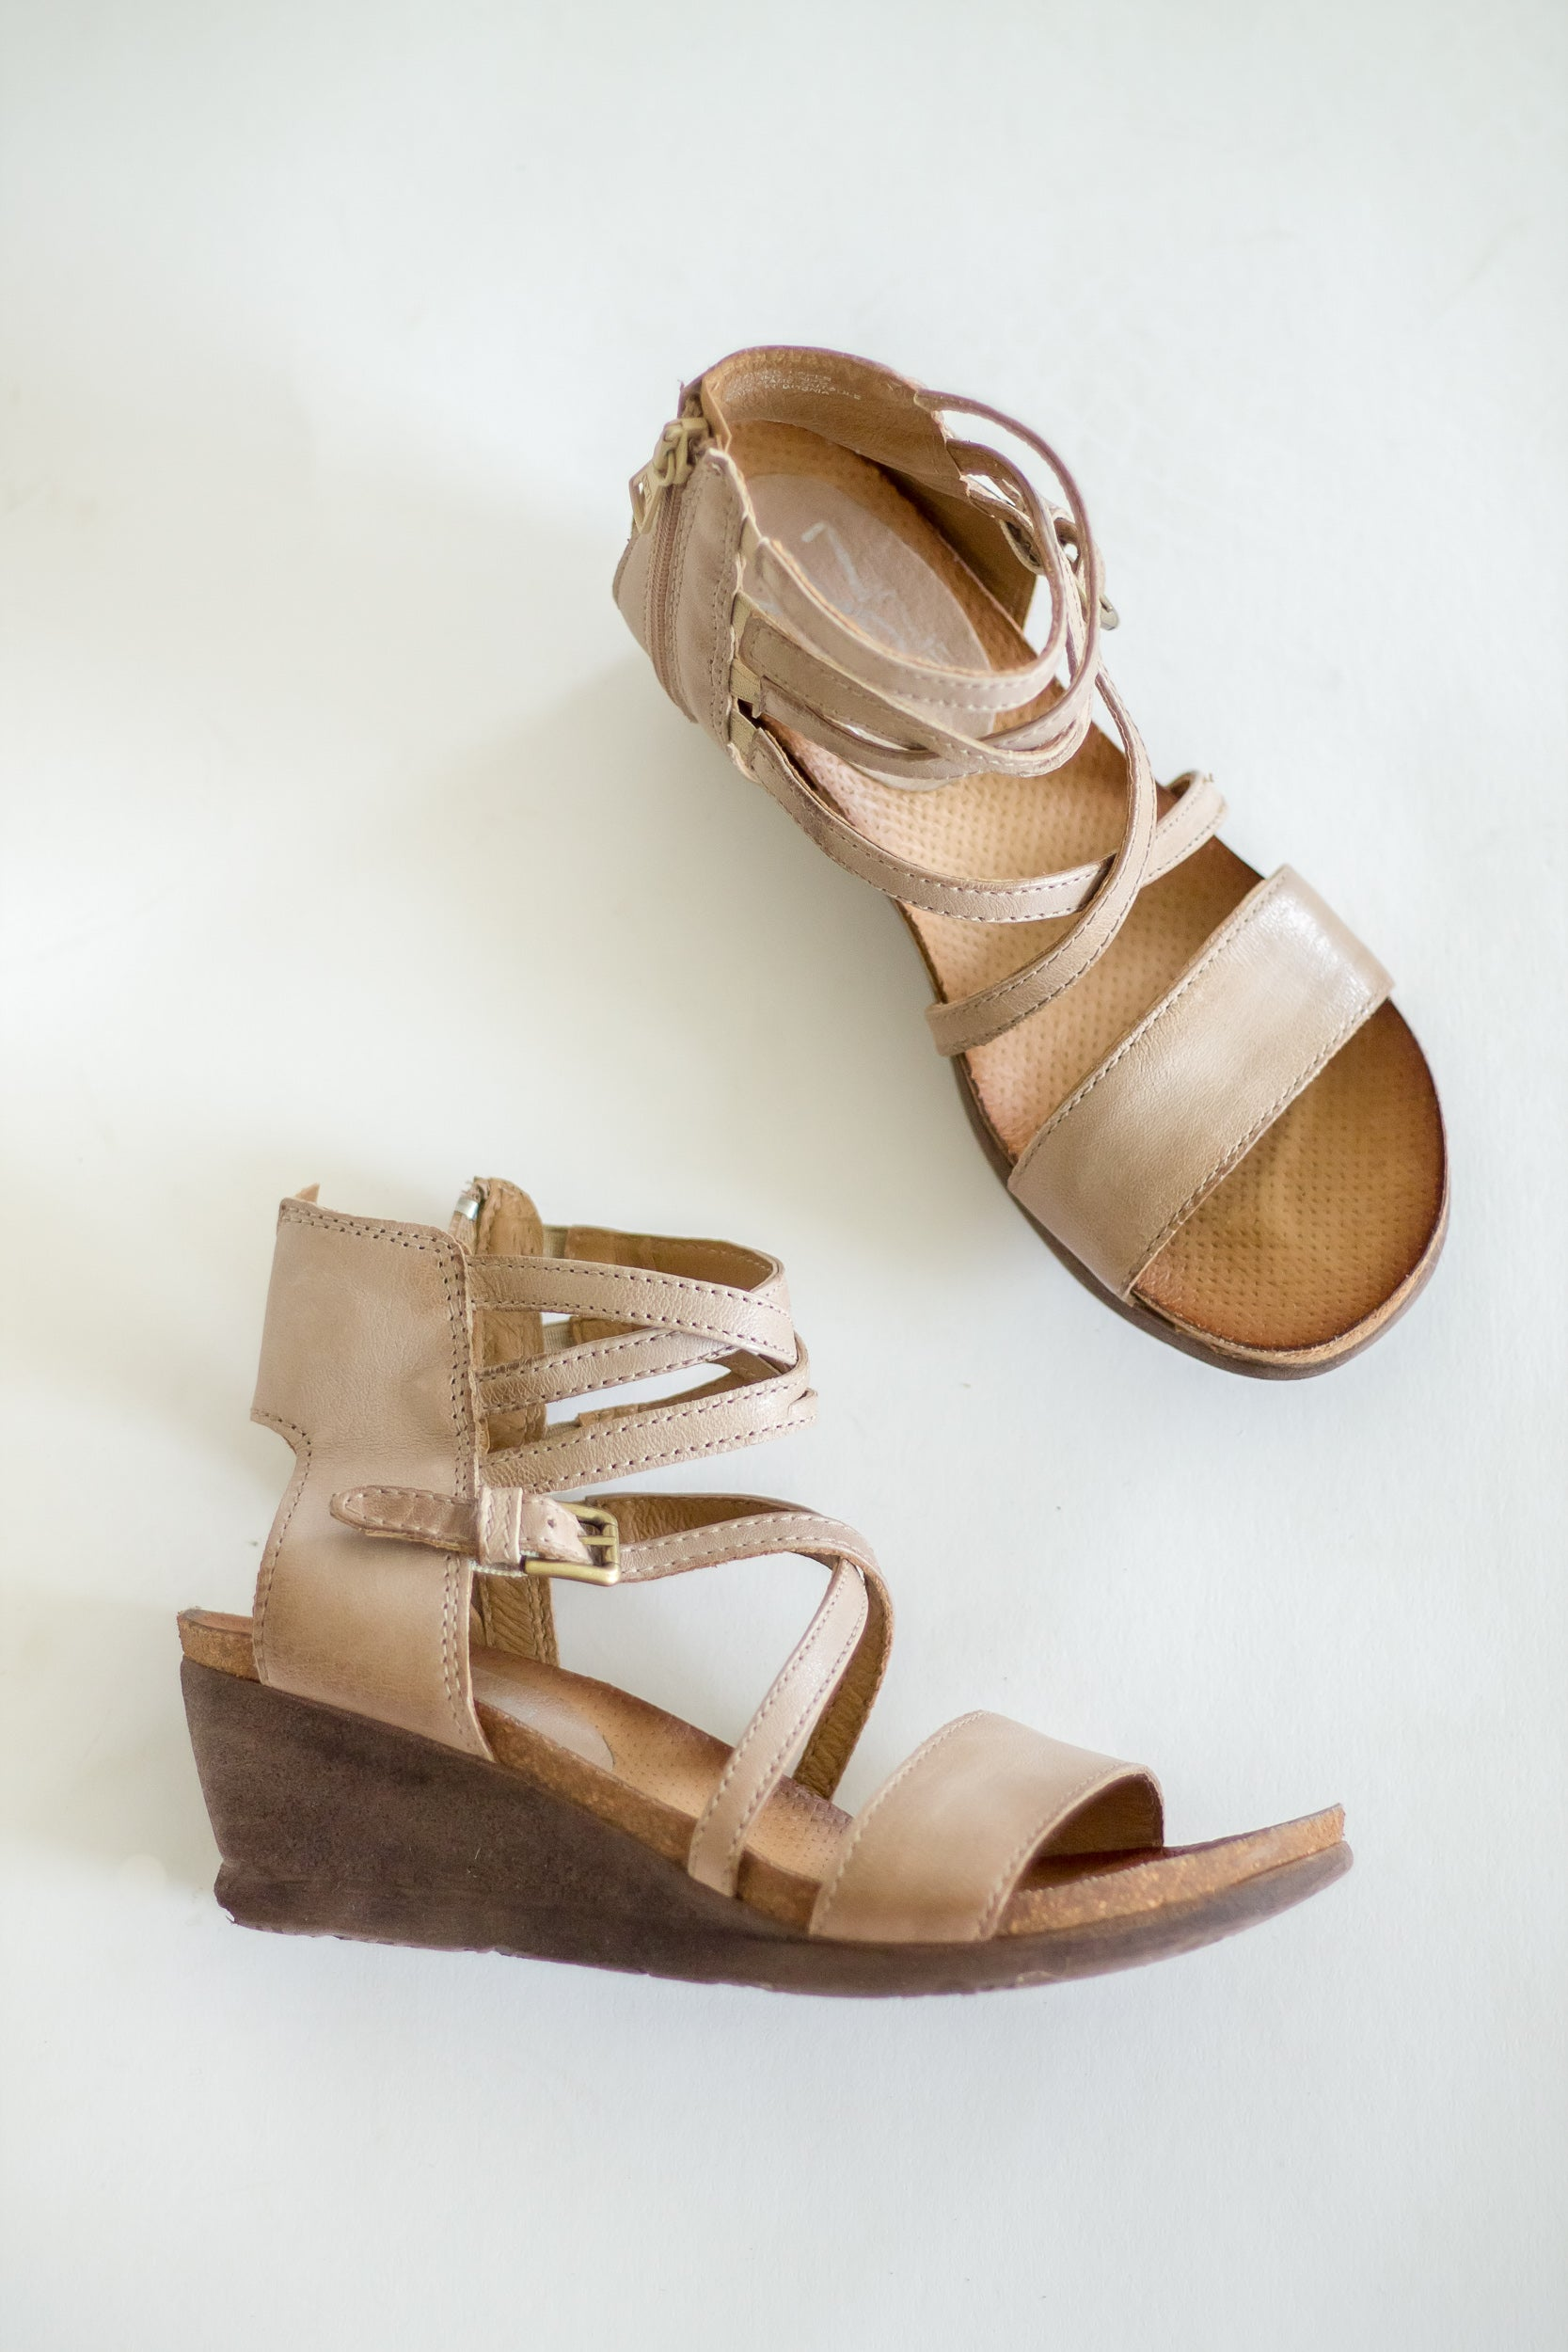 Miz Mooz Pebble Shay Wedge